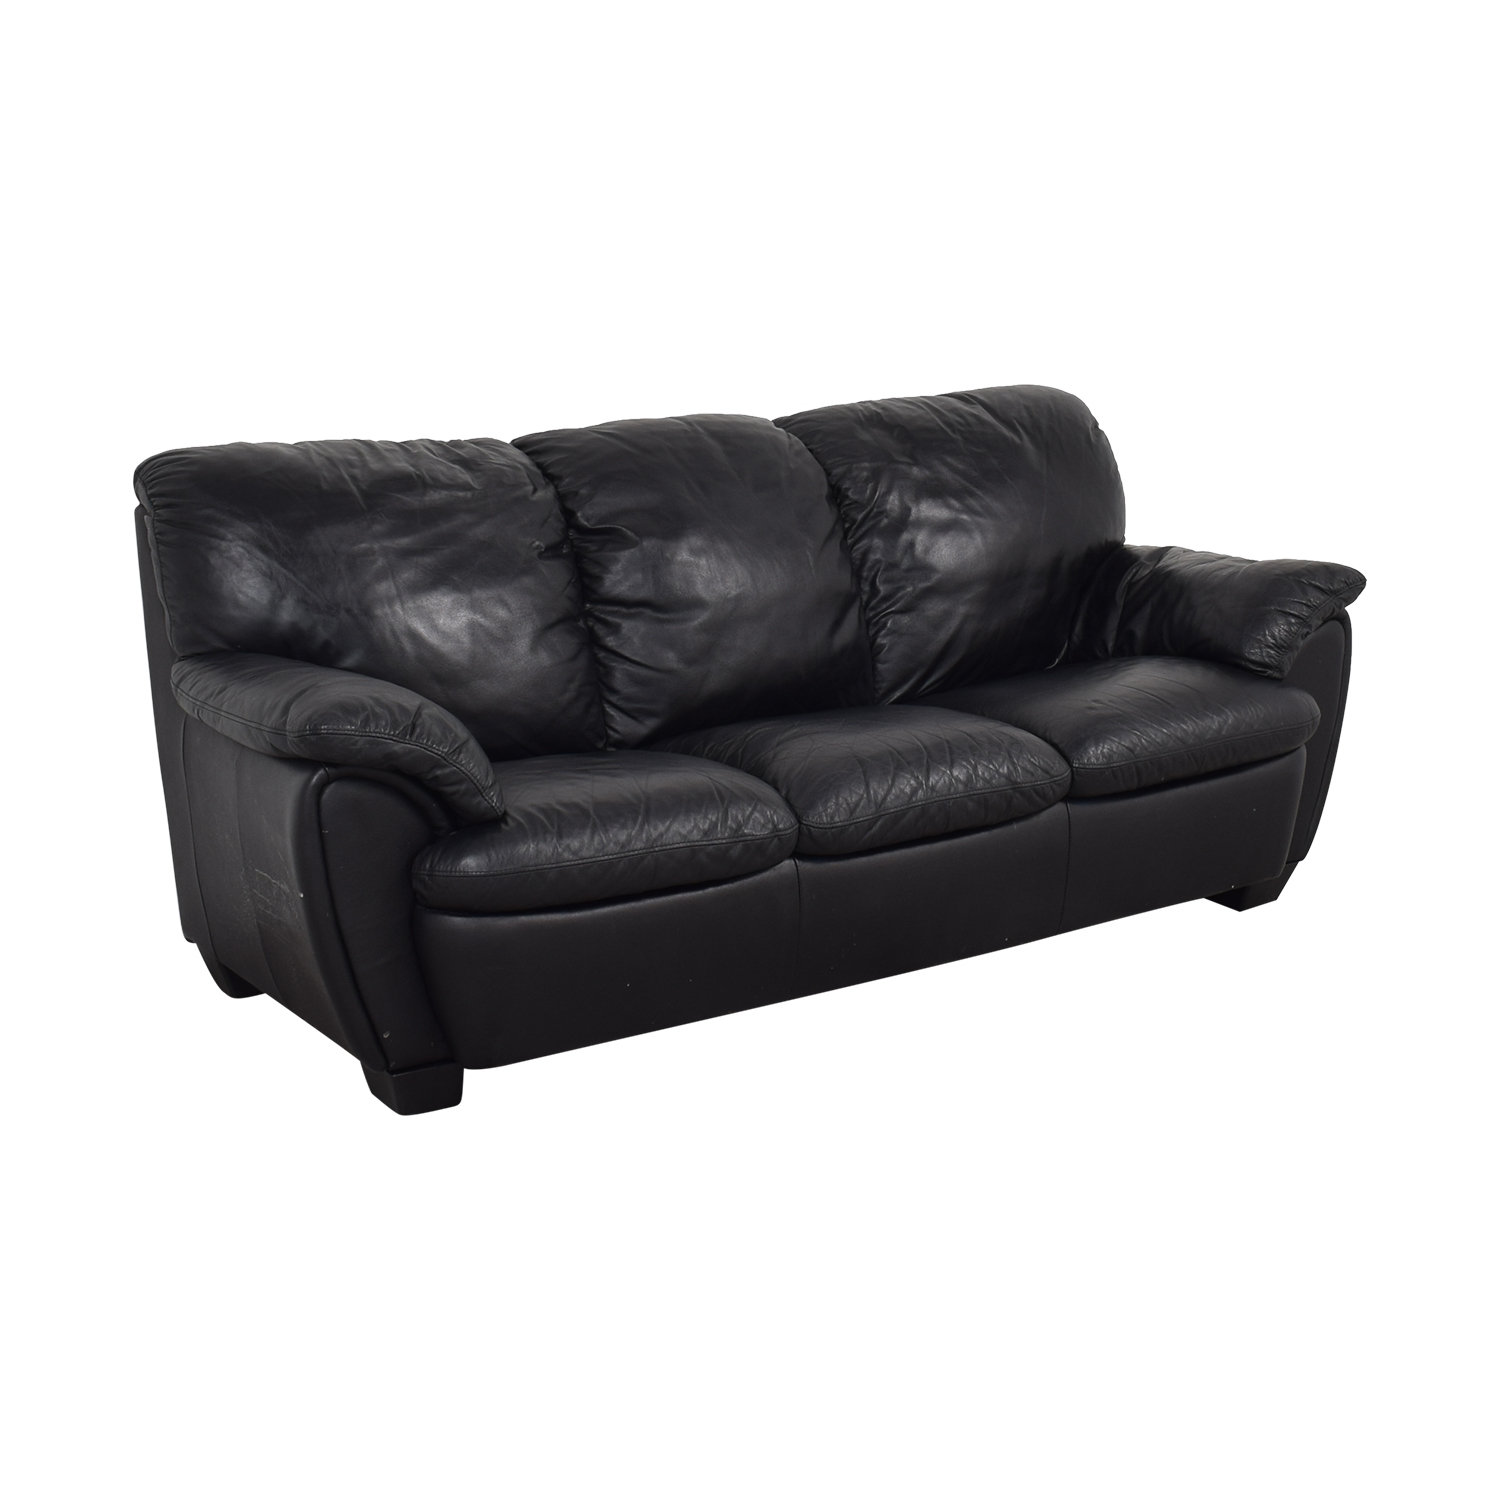 Broyhill Furniture Broyhill Leather Sofa and Ottoman nyc